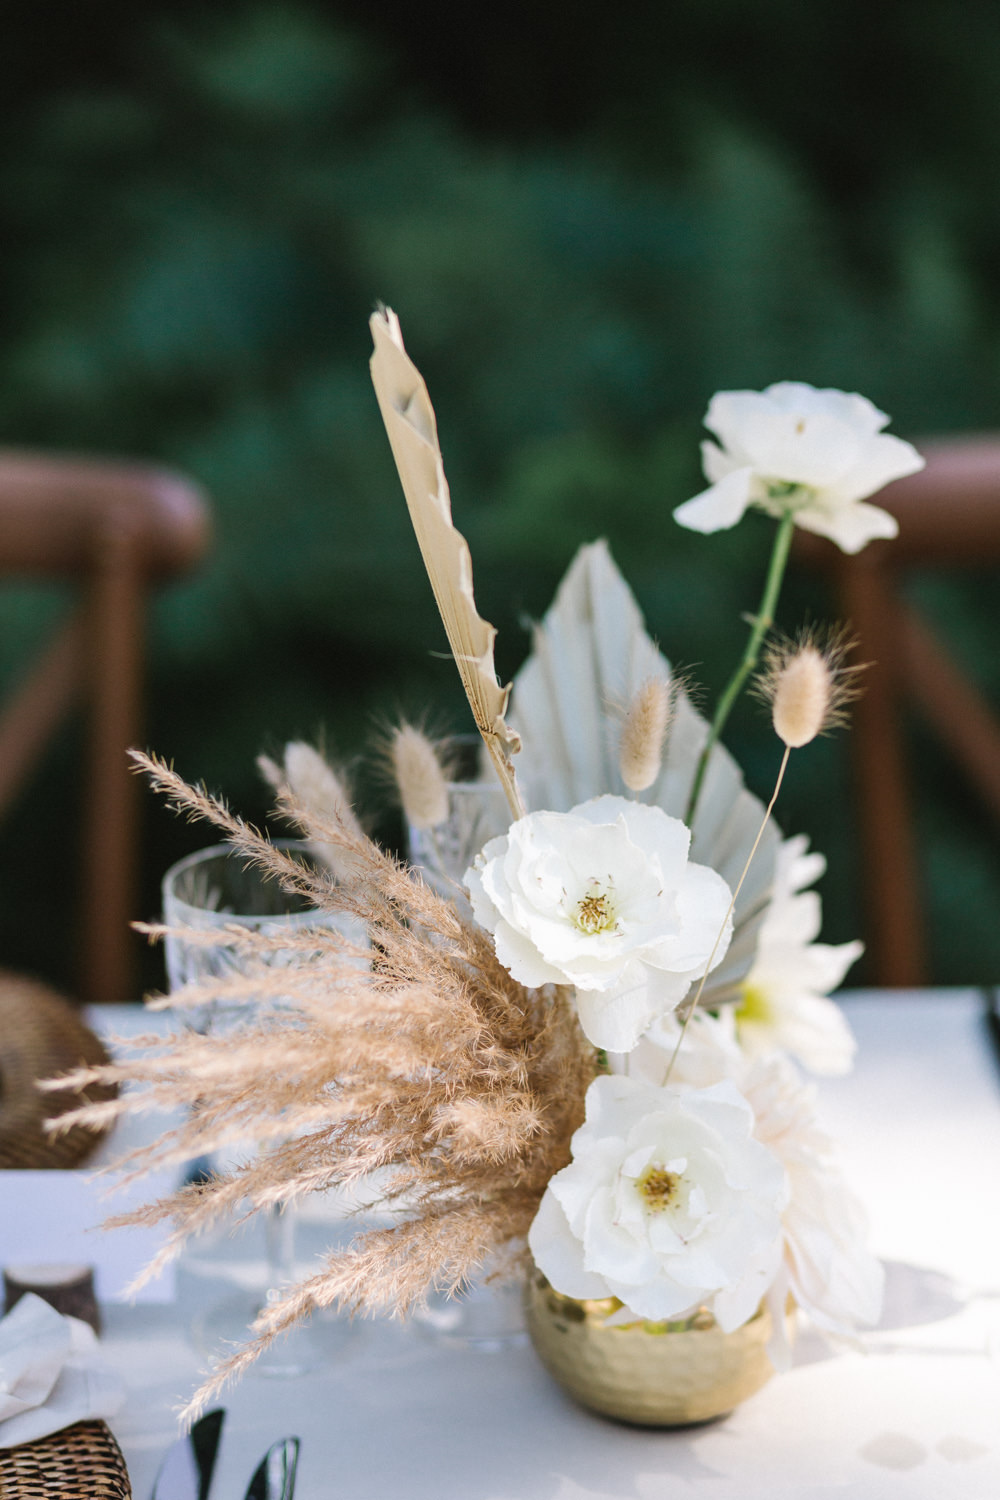 Table Flowers Centrepiece Palm Leave Grass Dried Seeds Boconnoc Wedding Debs Alexander Photography